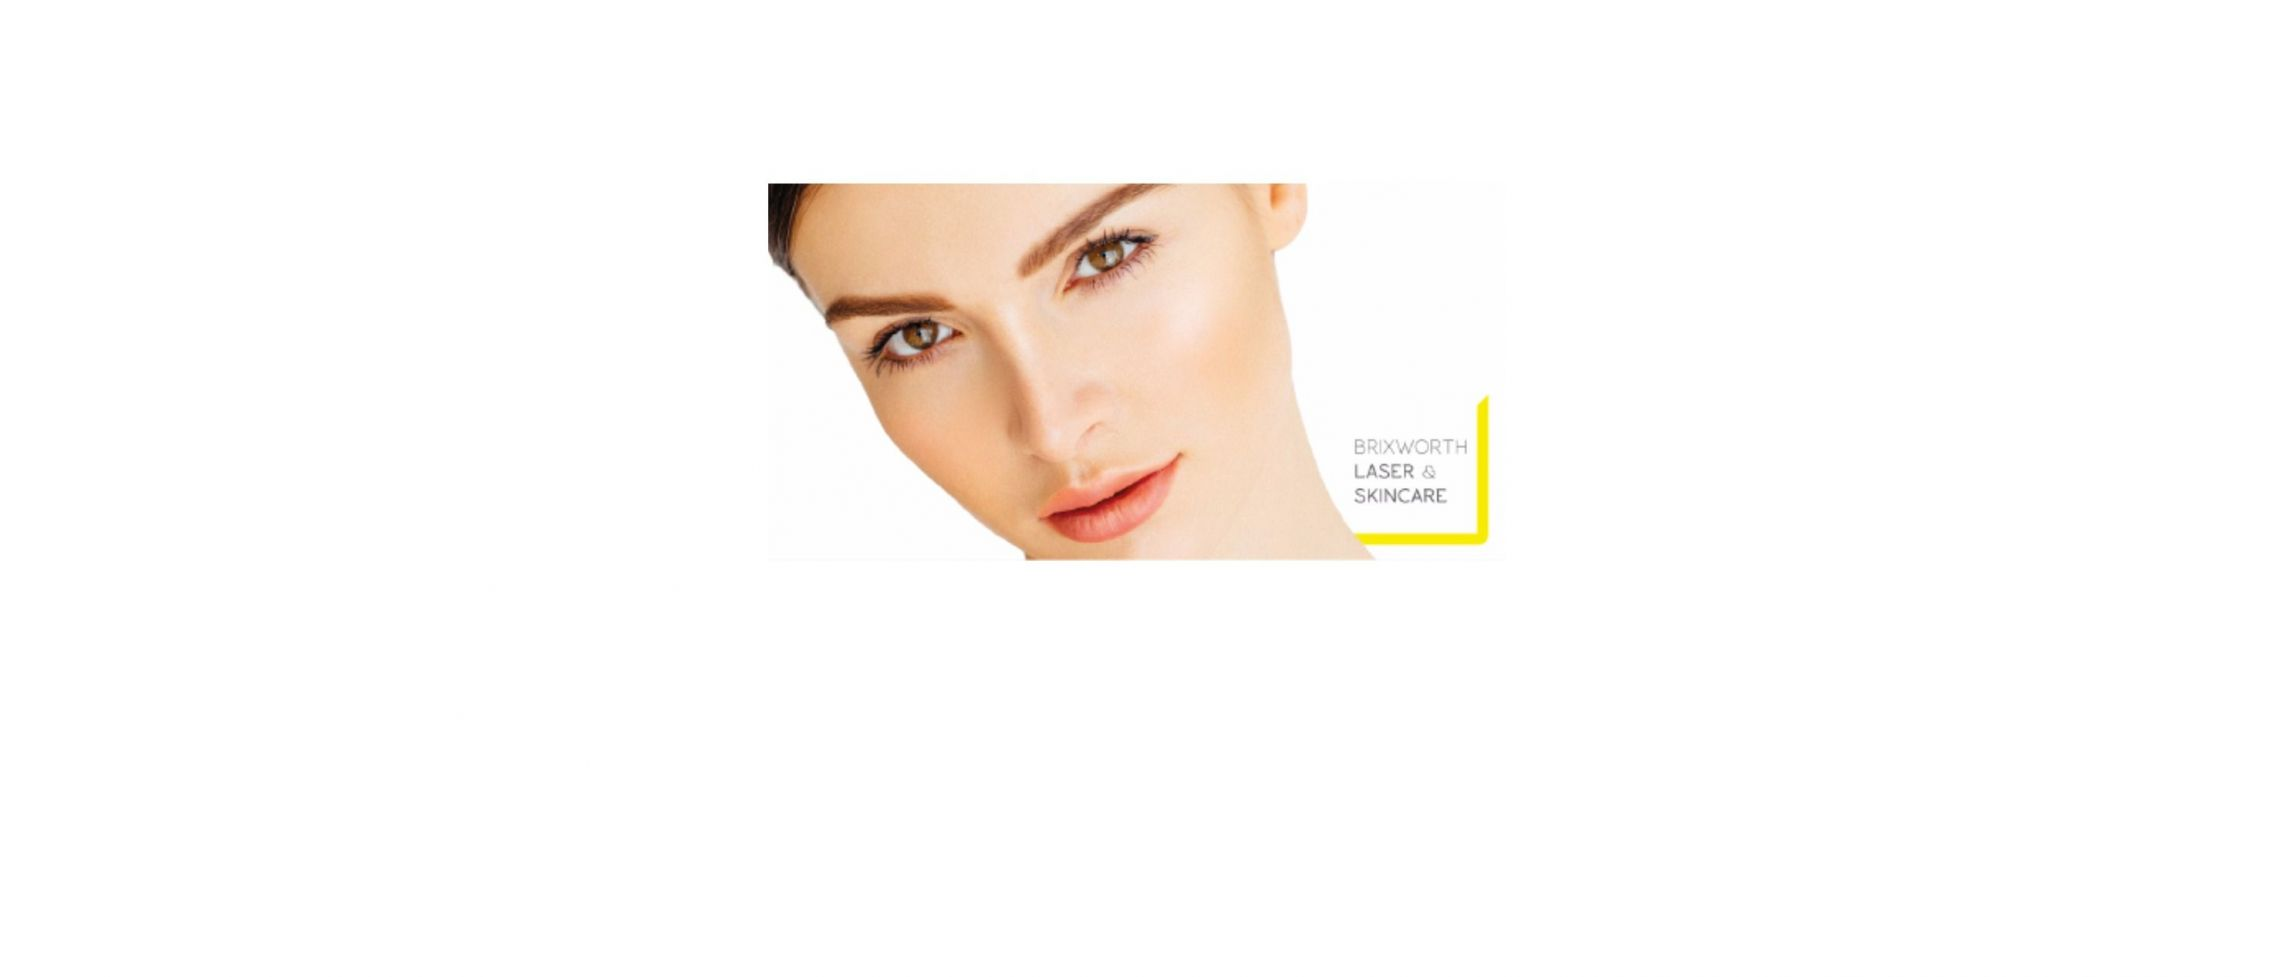 Brixworth Laser and Skincare